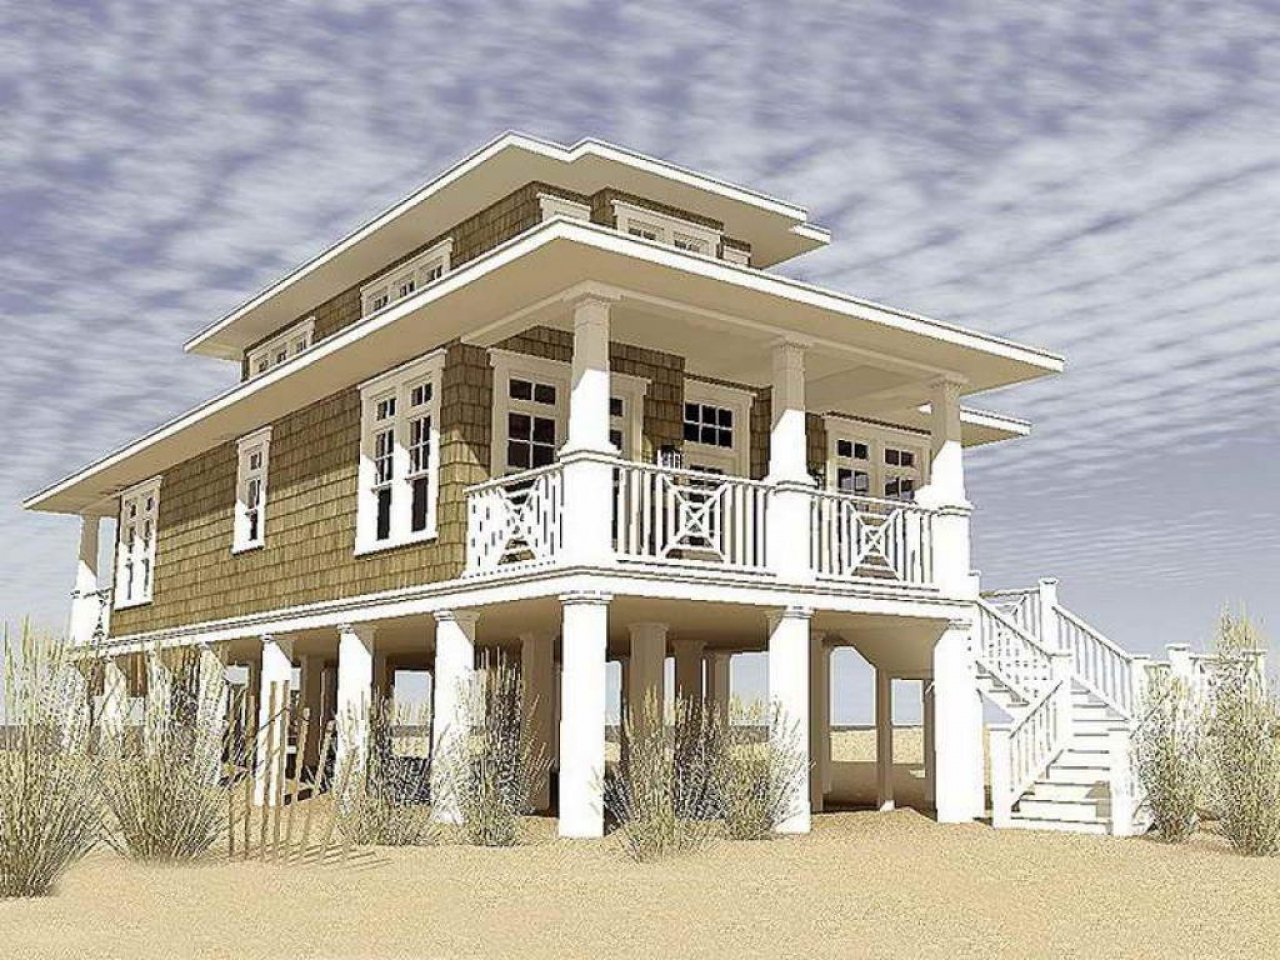 Tiny Beach Home Designs: Narrow Lot Cottage House Plans Gallery Of Narrow Lot Beach